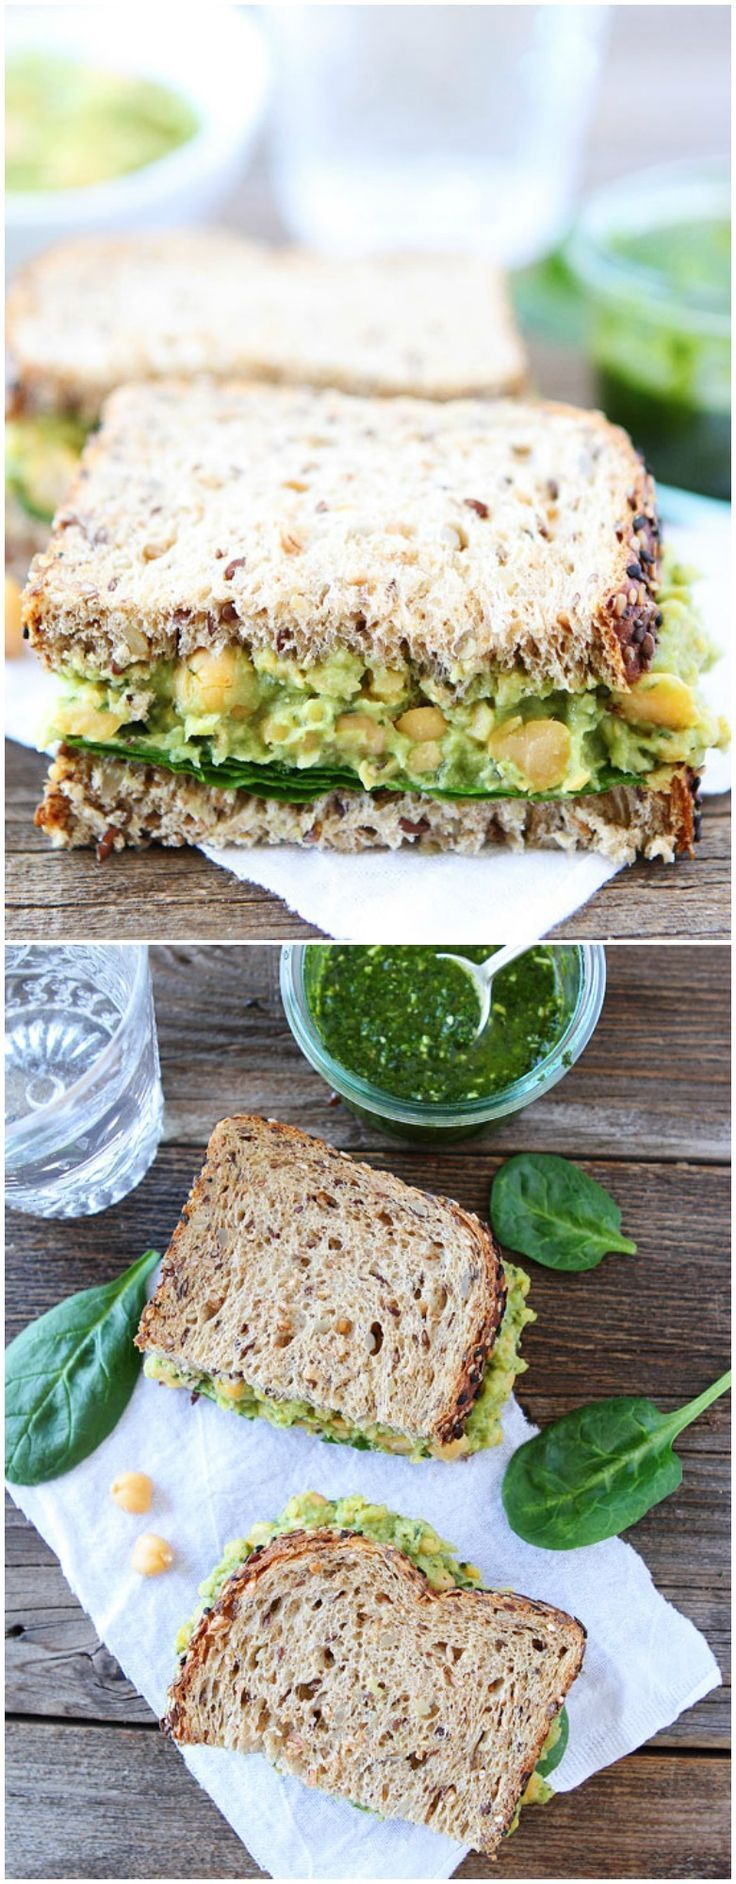 Easy healthy lunch sandwich recipes